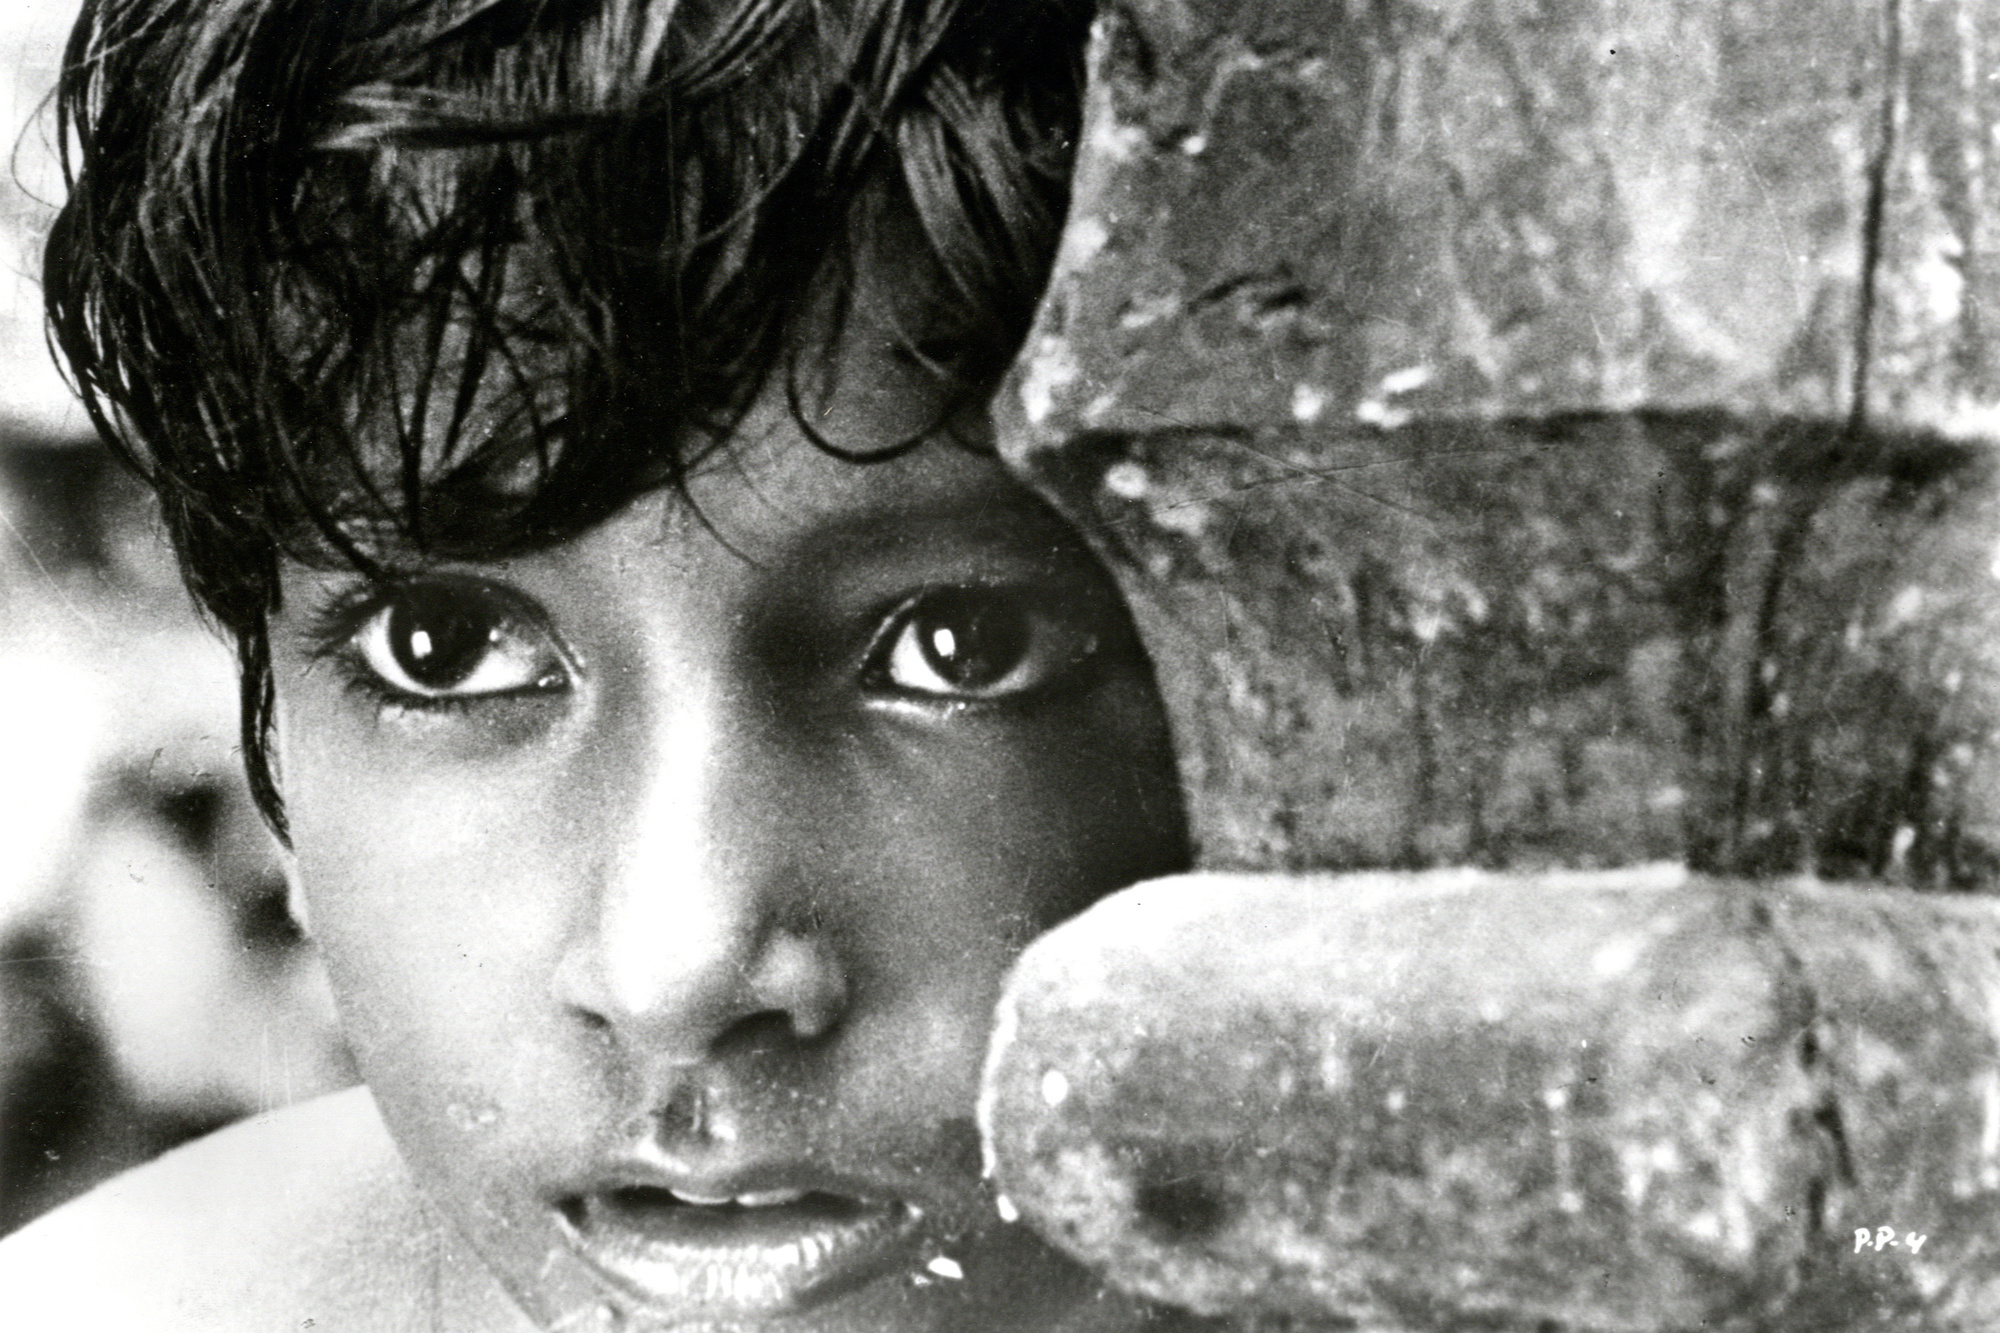 Pather Panchali. 1955. India. Written and directed by Satyajit Ray